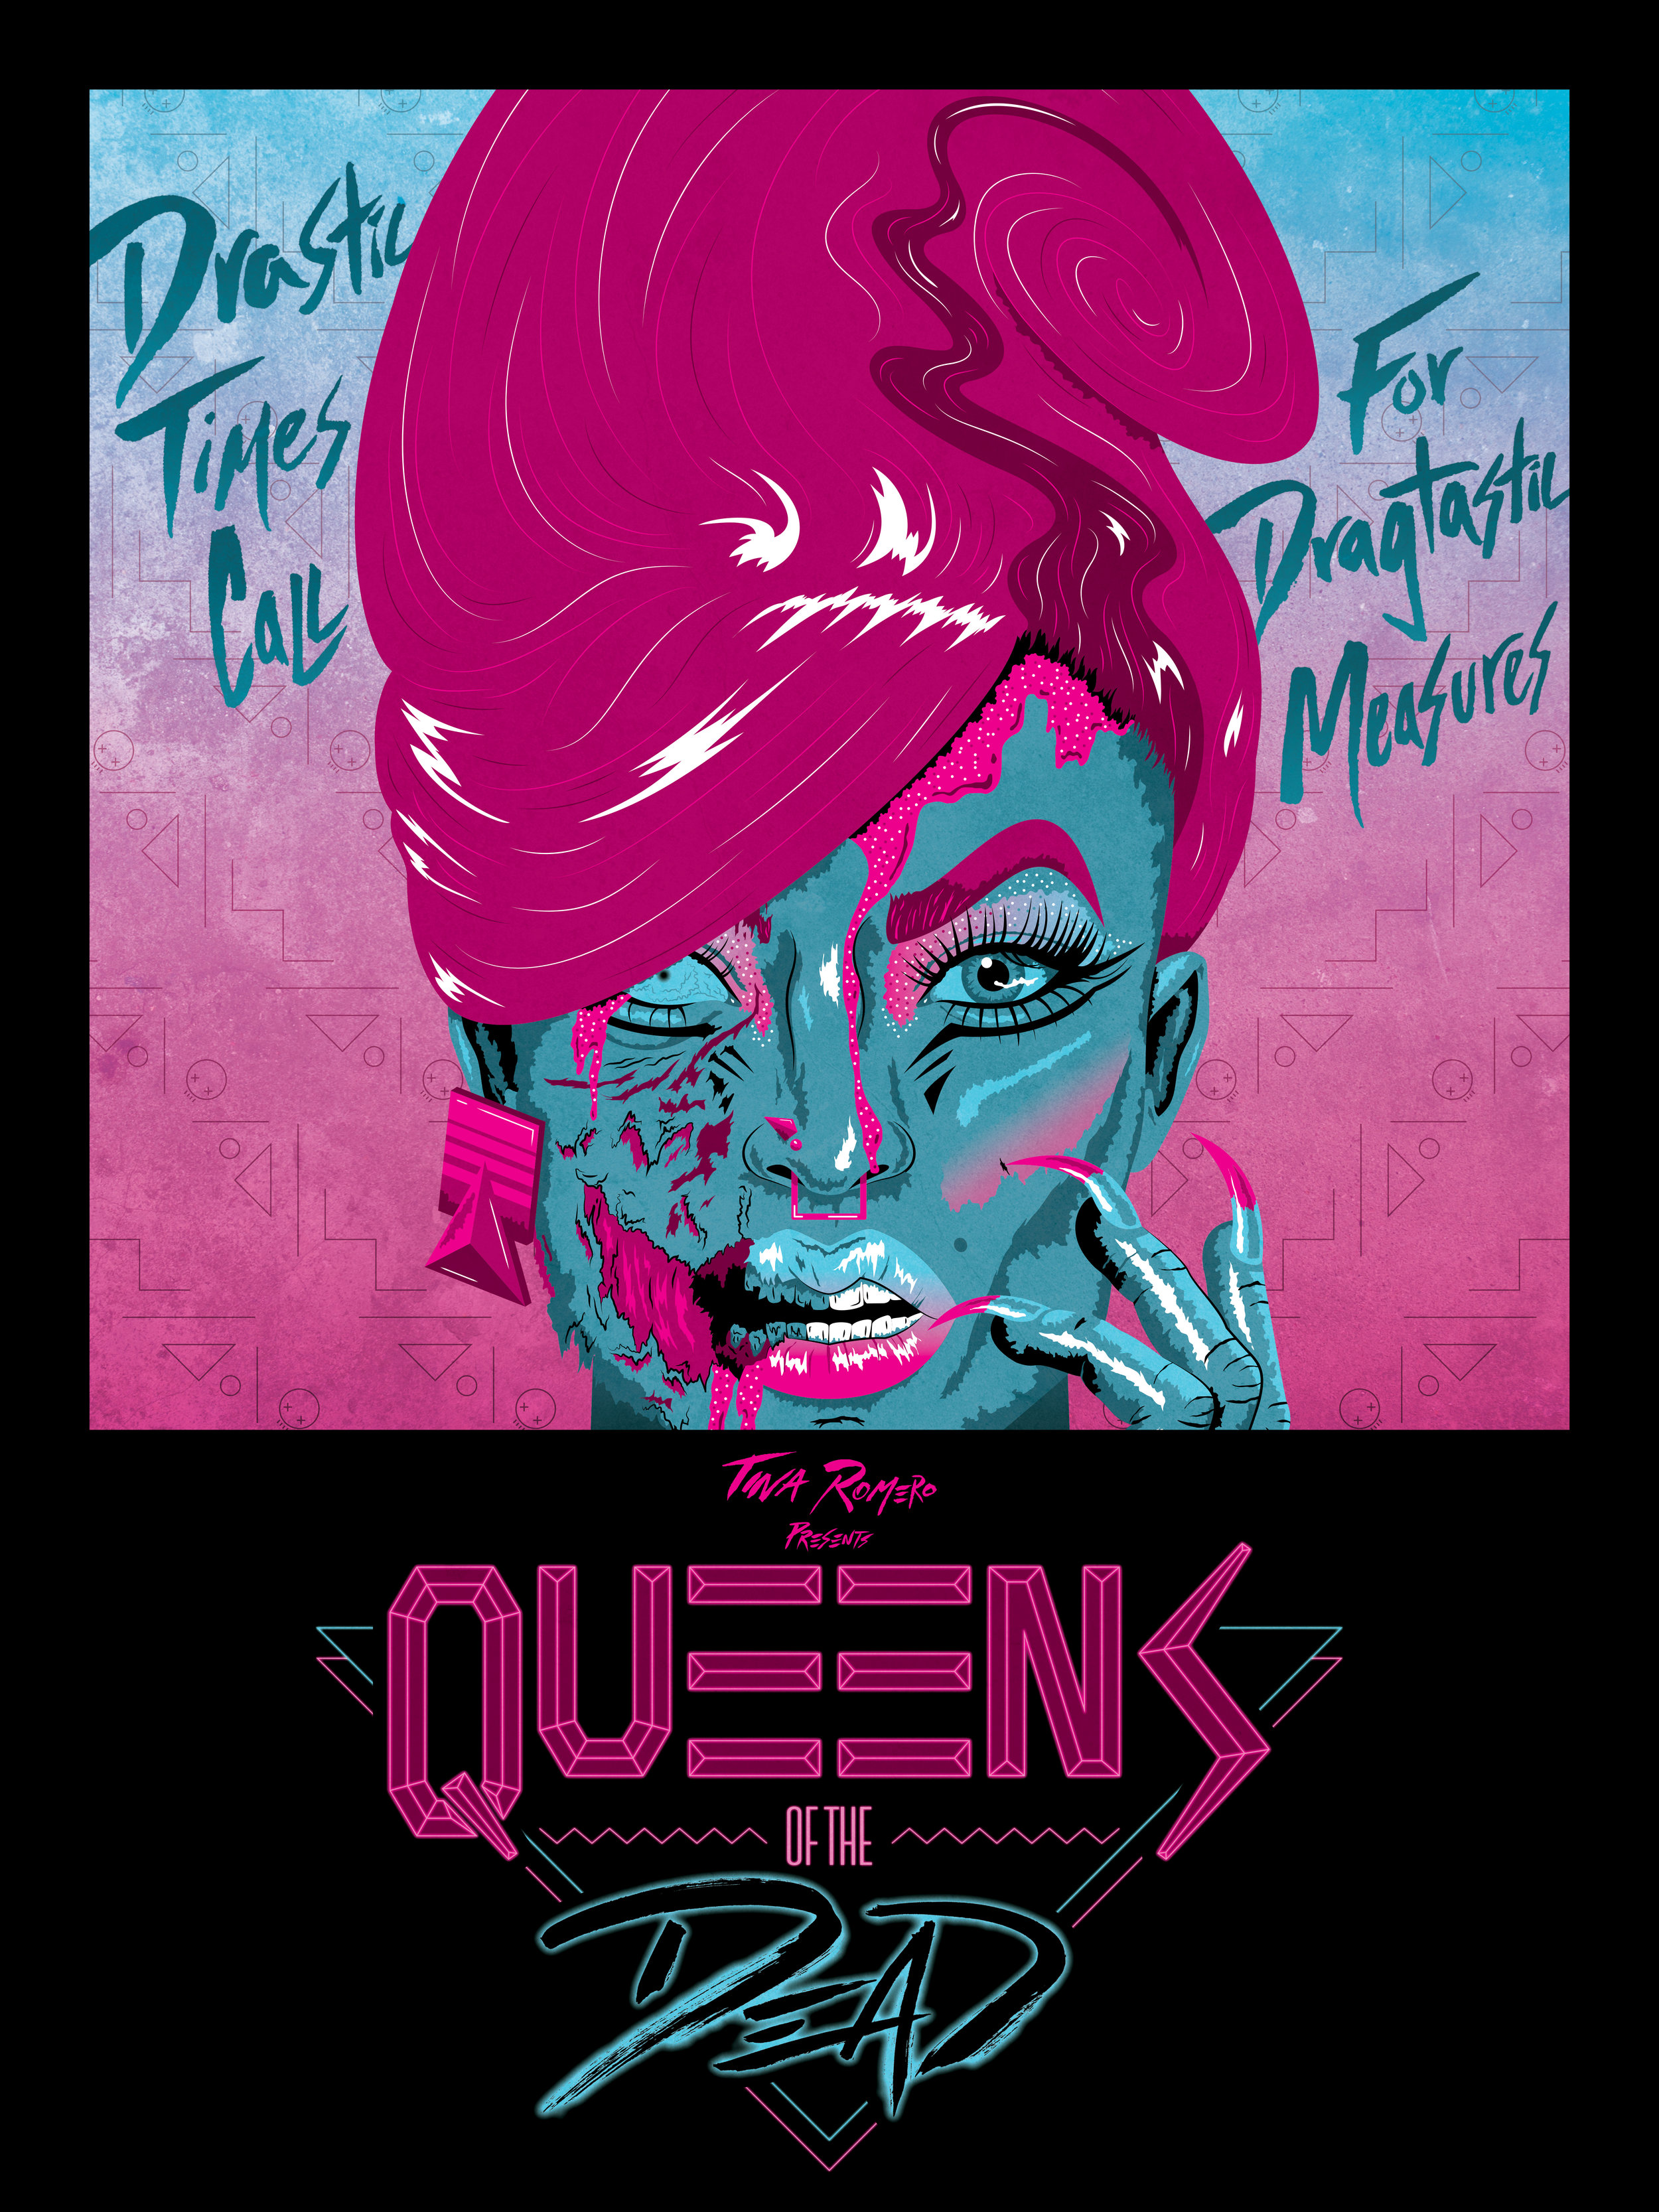 QUEENS OF THE DEAD - BRANDING | FREELANCETina Romero wrote the film, Queens of the Dead, a story involving drag queens and the apocalypse with an 80s aesthetic. She hired me to create a movie poster and logo that pays homage to her father, George Romero's Dawn of the Dead.